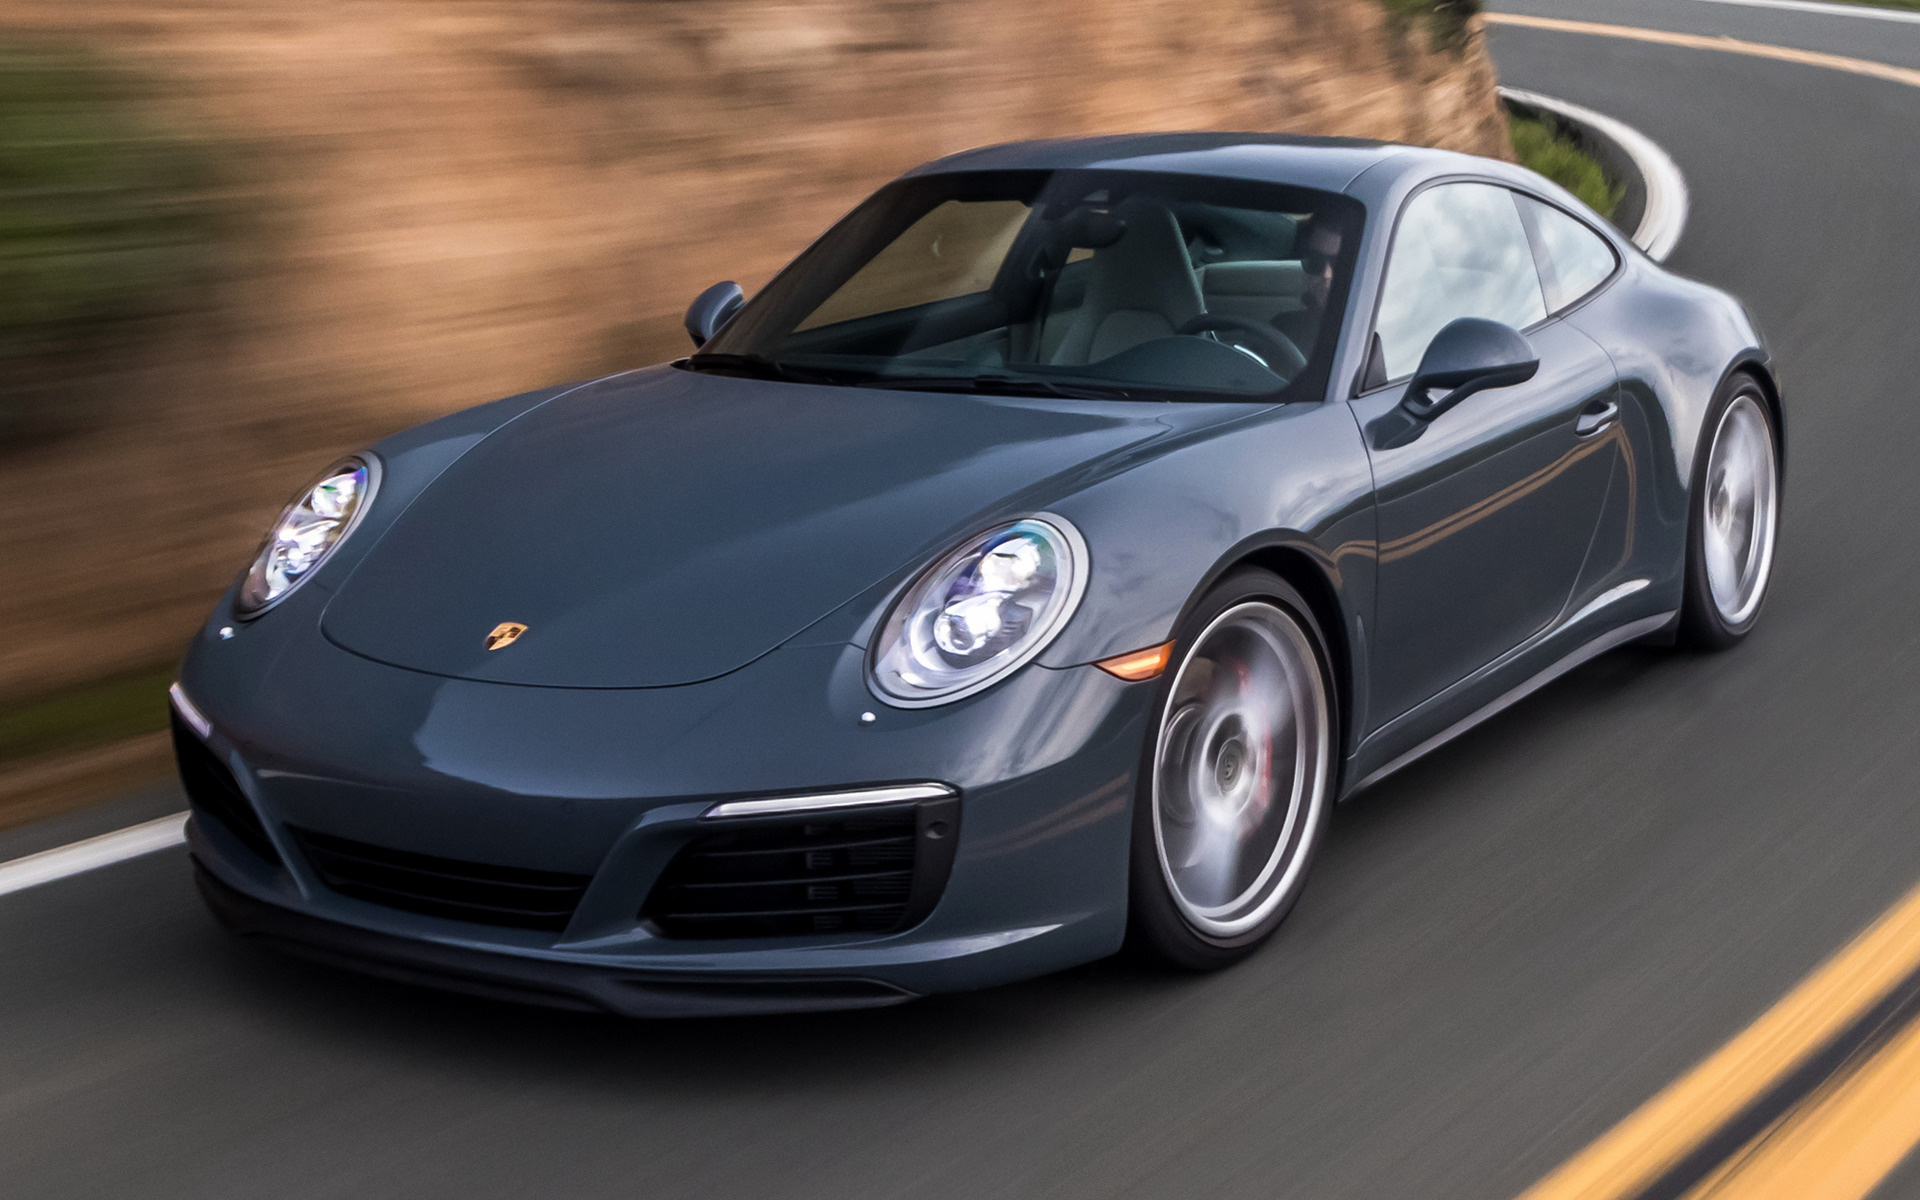 Porsche 911 Carrera S Car Wallpaper PNG Transparent best stock 1920x1200